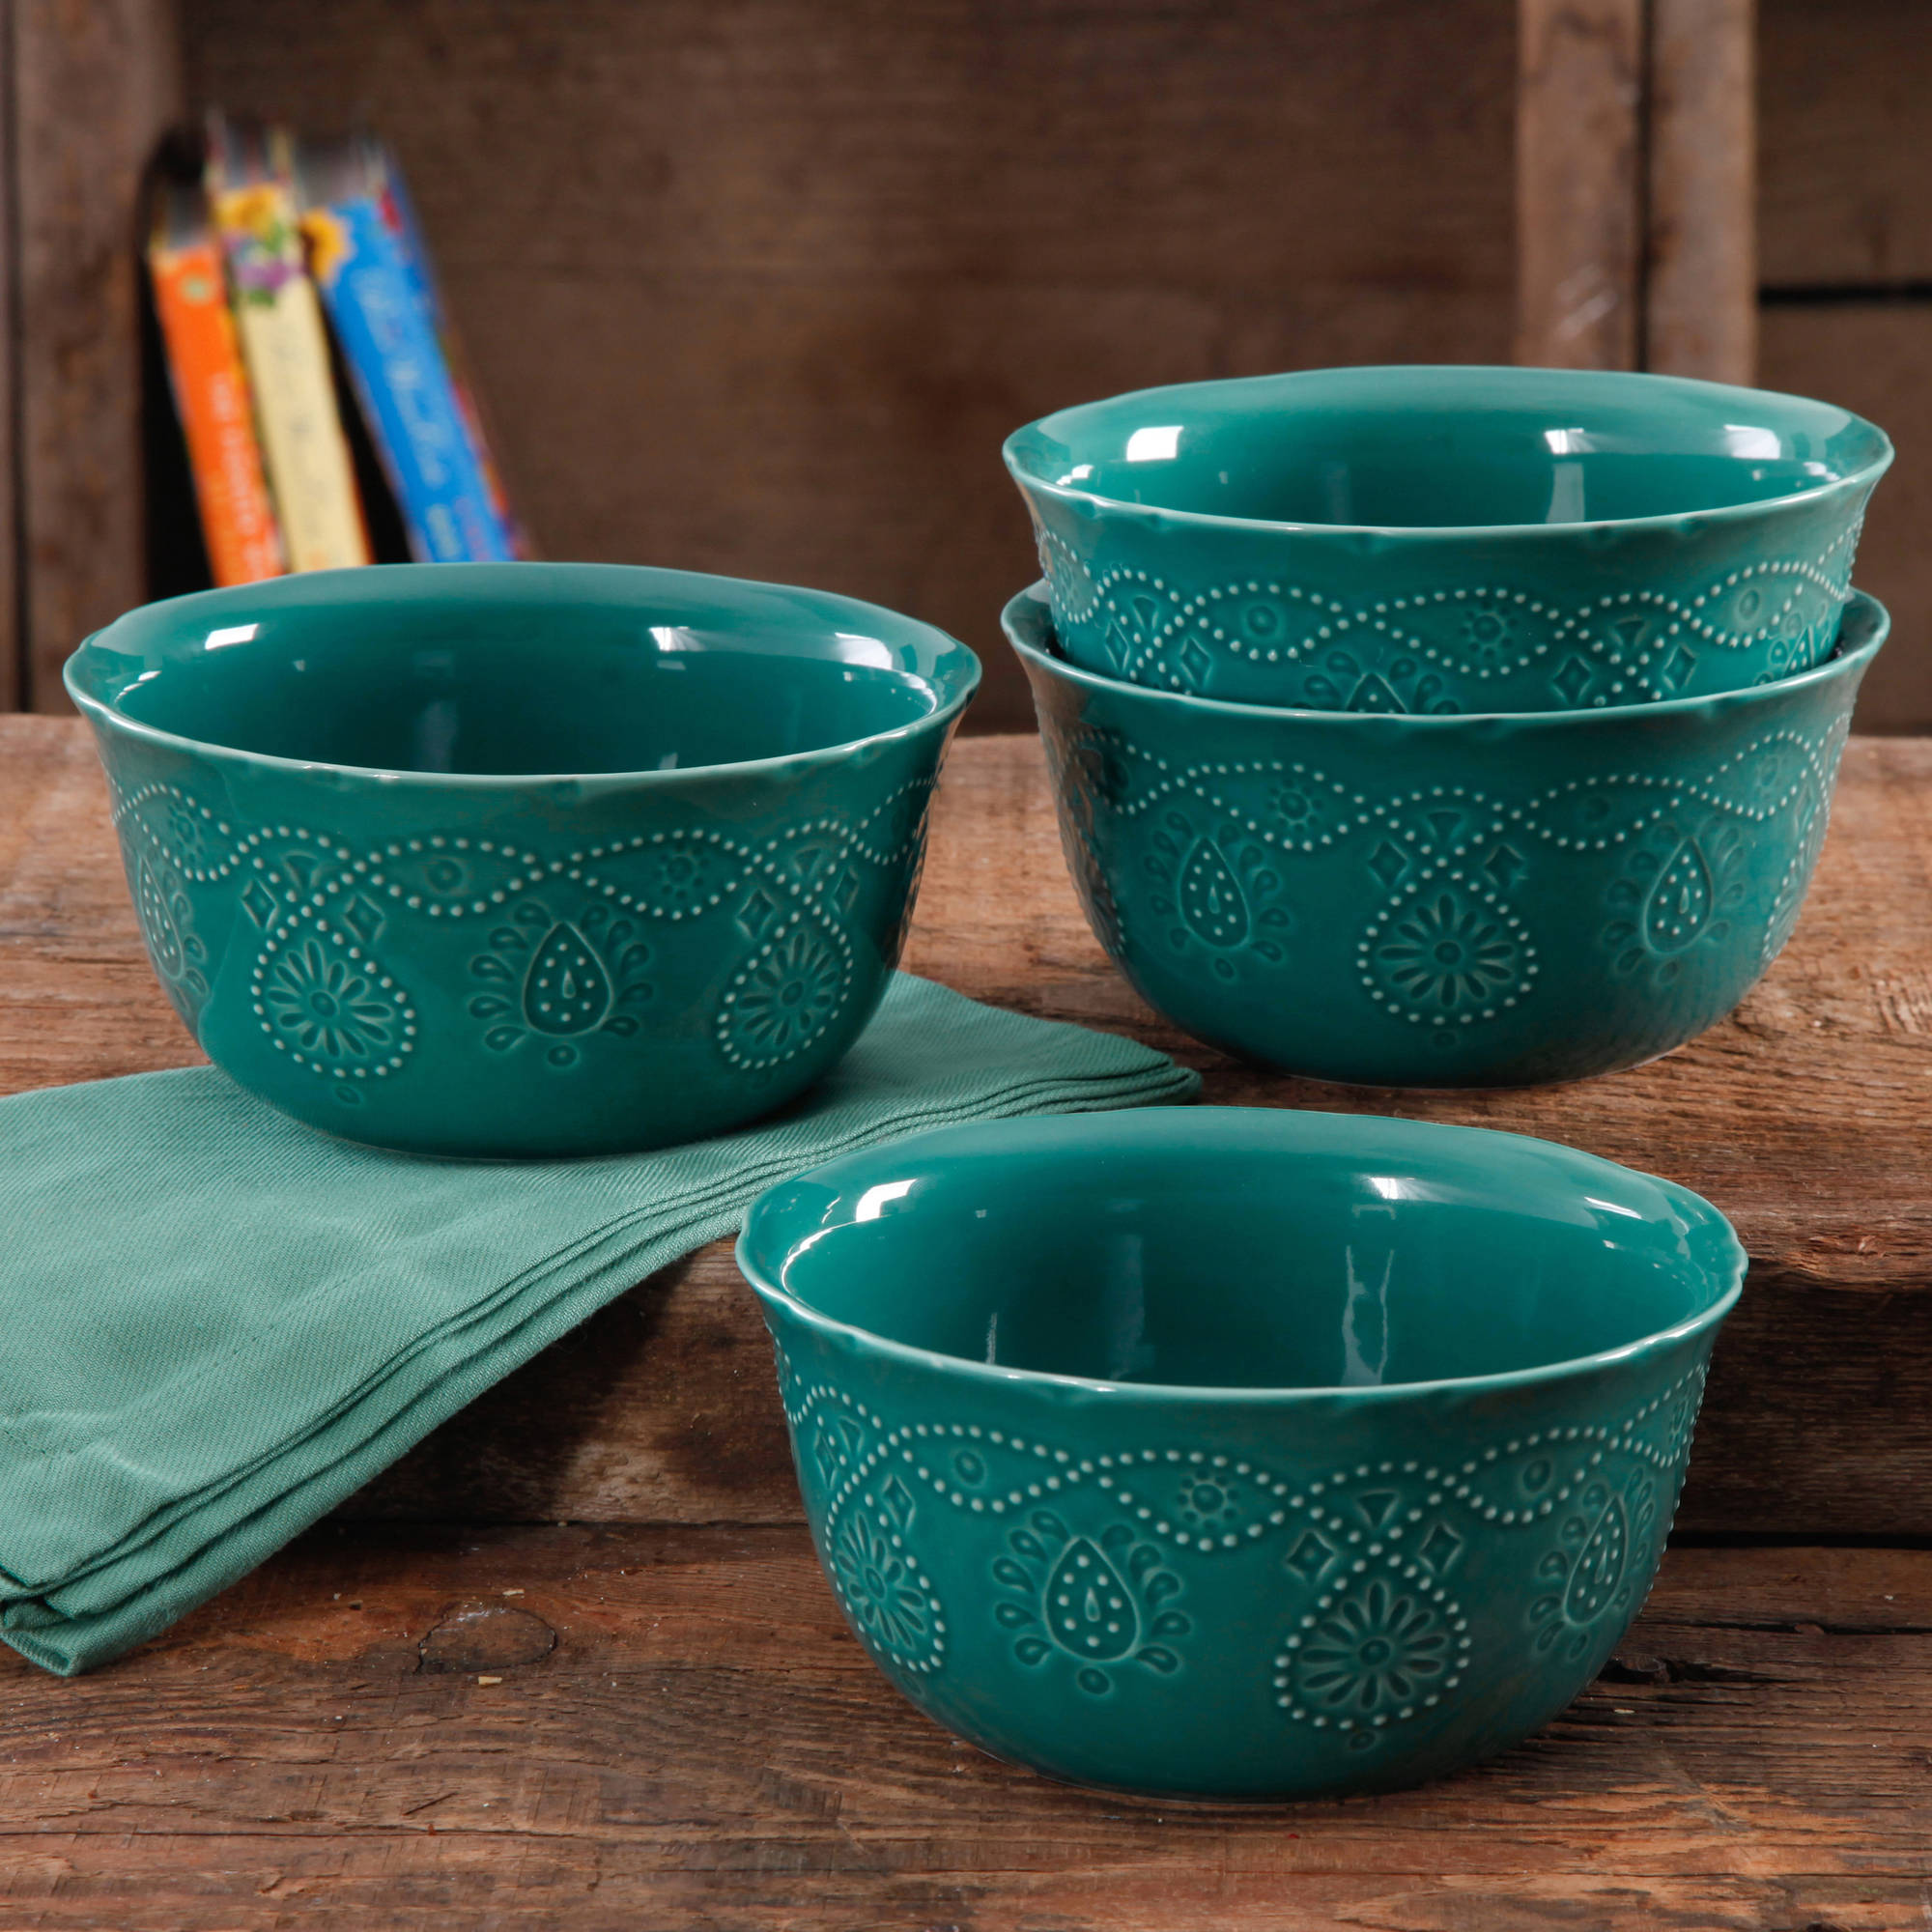 The Pioneer Woman Cowgirl Lace Transparent Glaze 4-Pack Bowls